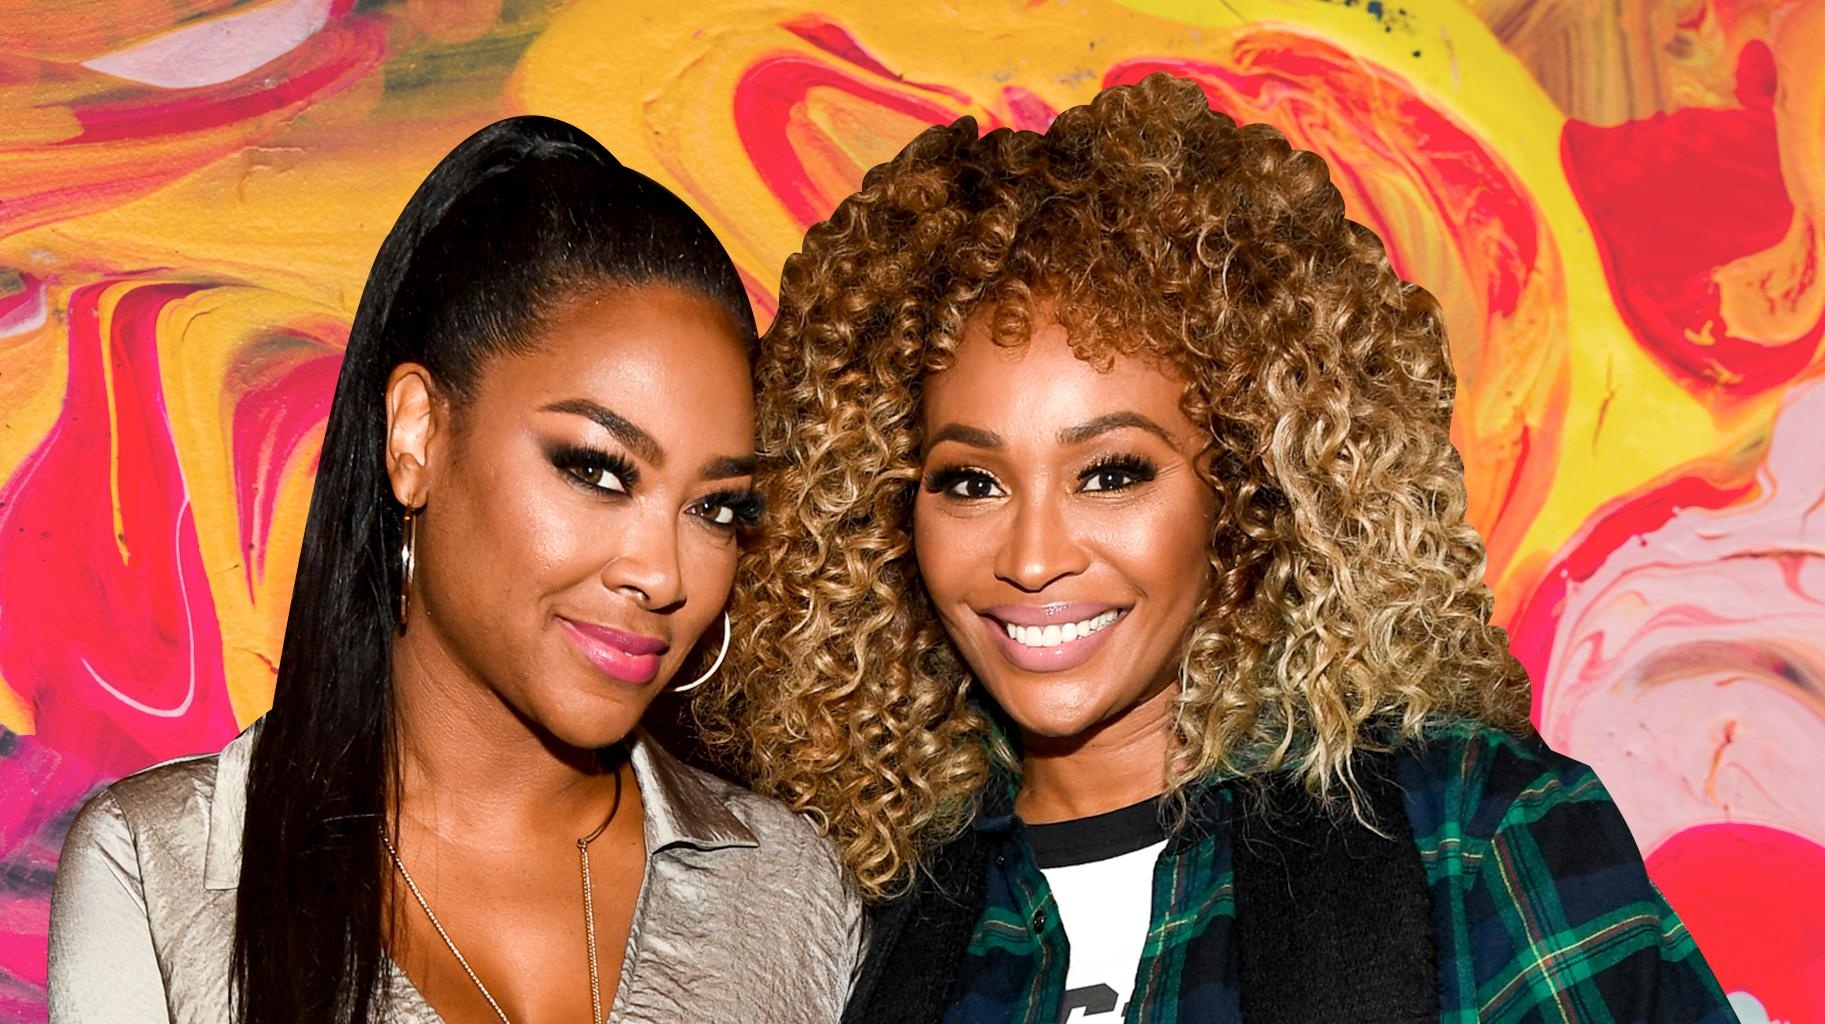 Kenya Moore Offers Her Gratitude To Cynthia Bailey For Always Being There For Her - Check Out Their Pics Together